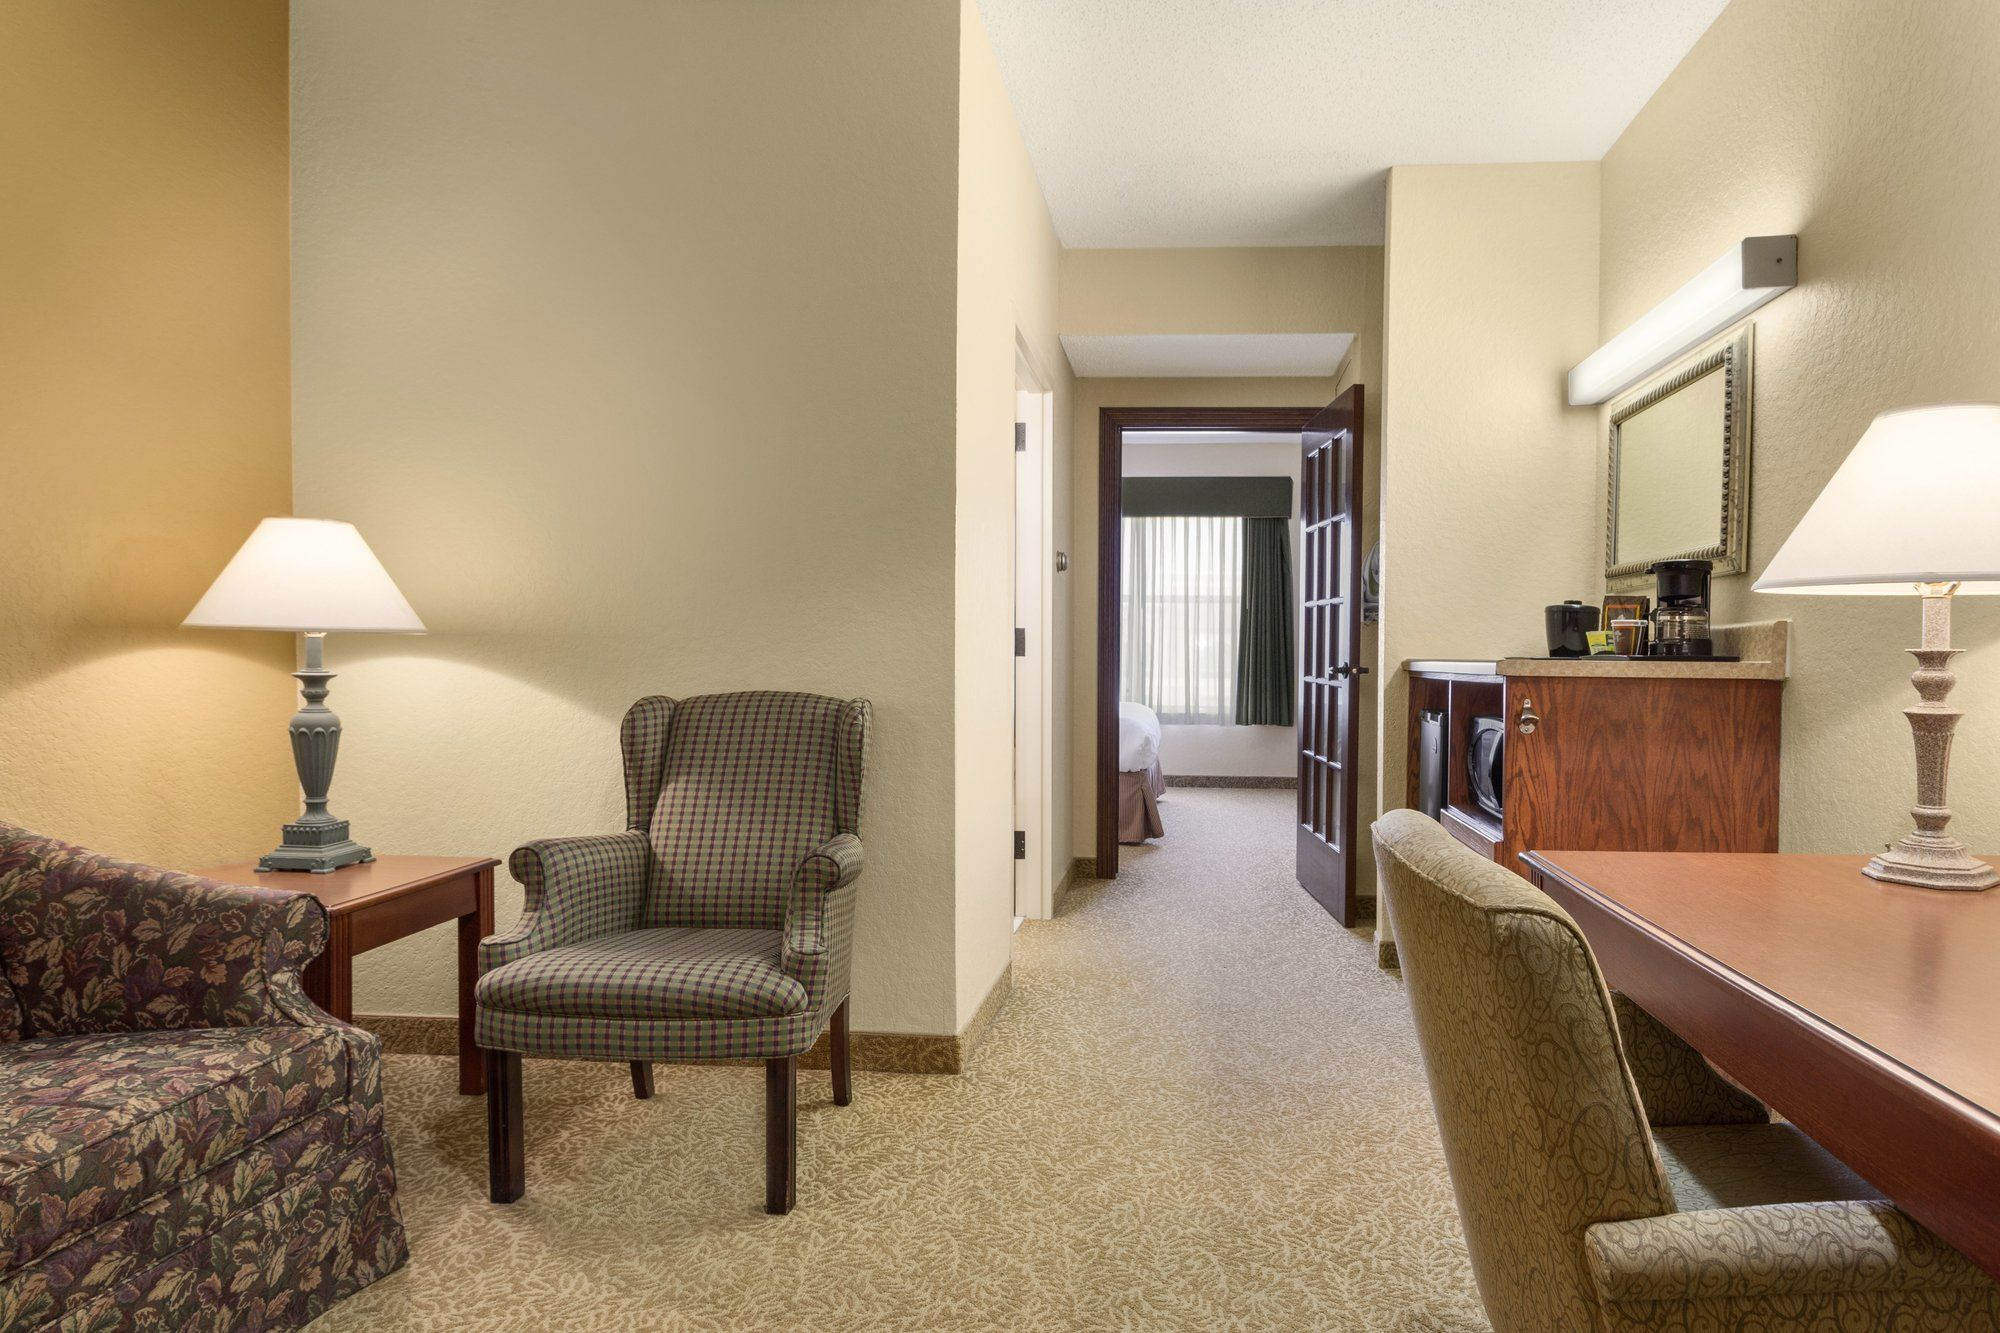 Country Inn & Suites By Carlson Houston Airport South - IAH in Houston, TX